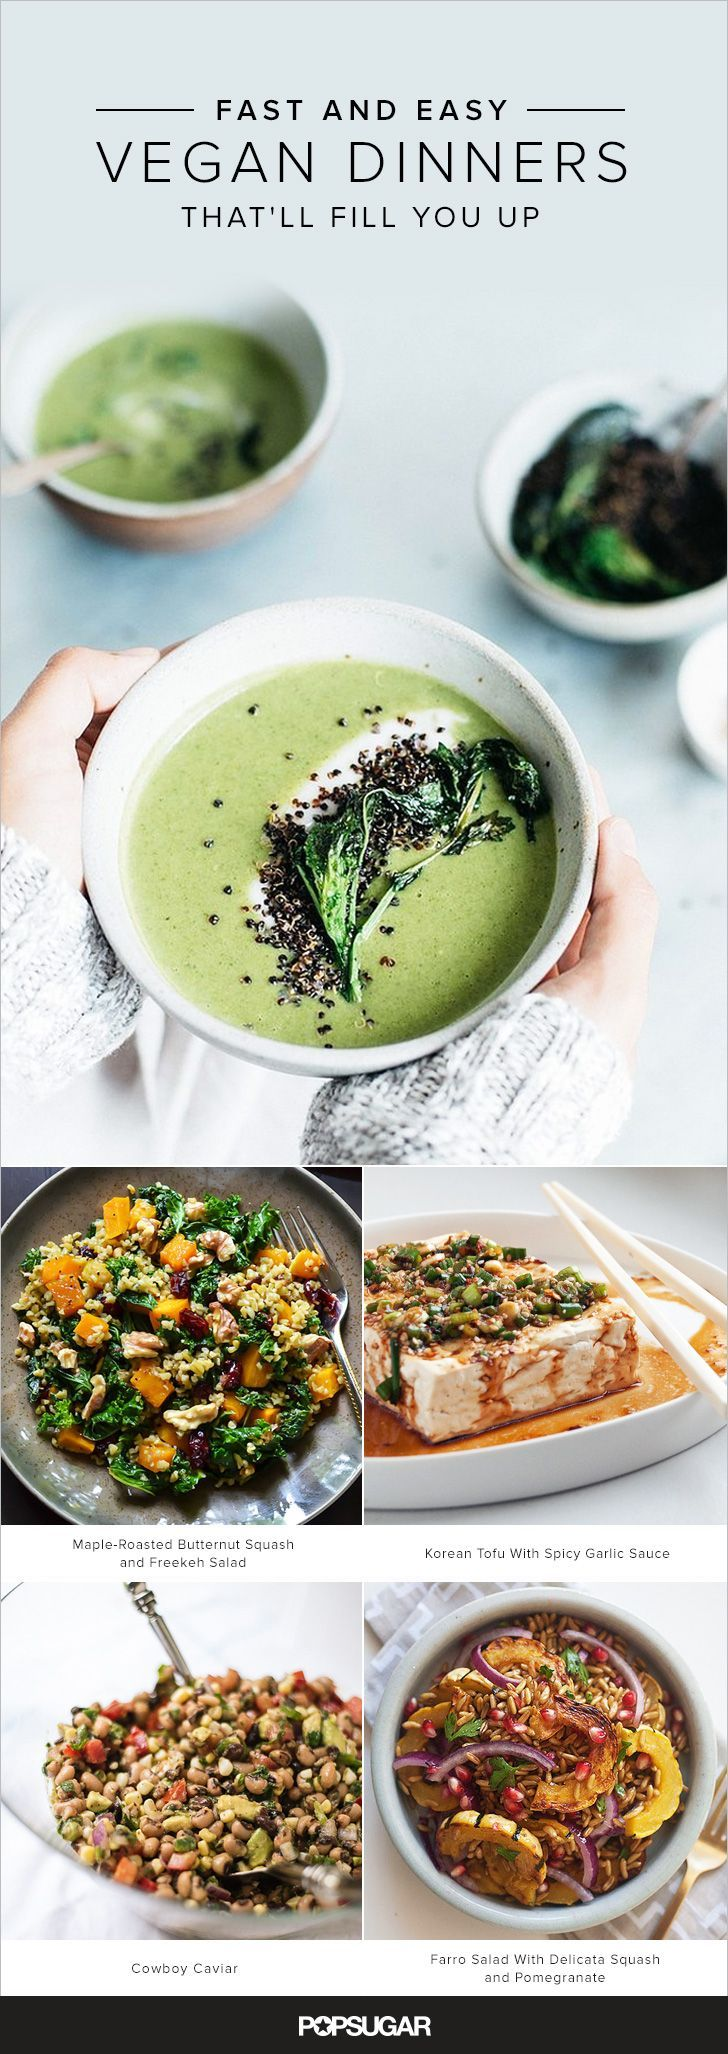 Vegan fare is sometimes — incorrectly — perceived to be rabbit food. And sure, that can be the case with some salad, pasta, and grain-based recipes, but it doesn't have to be. (And frankly, plenty of dishes made with dairy, meat, or eggs won't keep you full either.) To dispel that myth, we've rounded up more than 60 recipes that are vegan, supertasty, fast and easy, and filling.